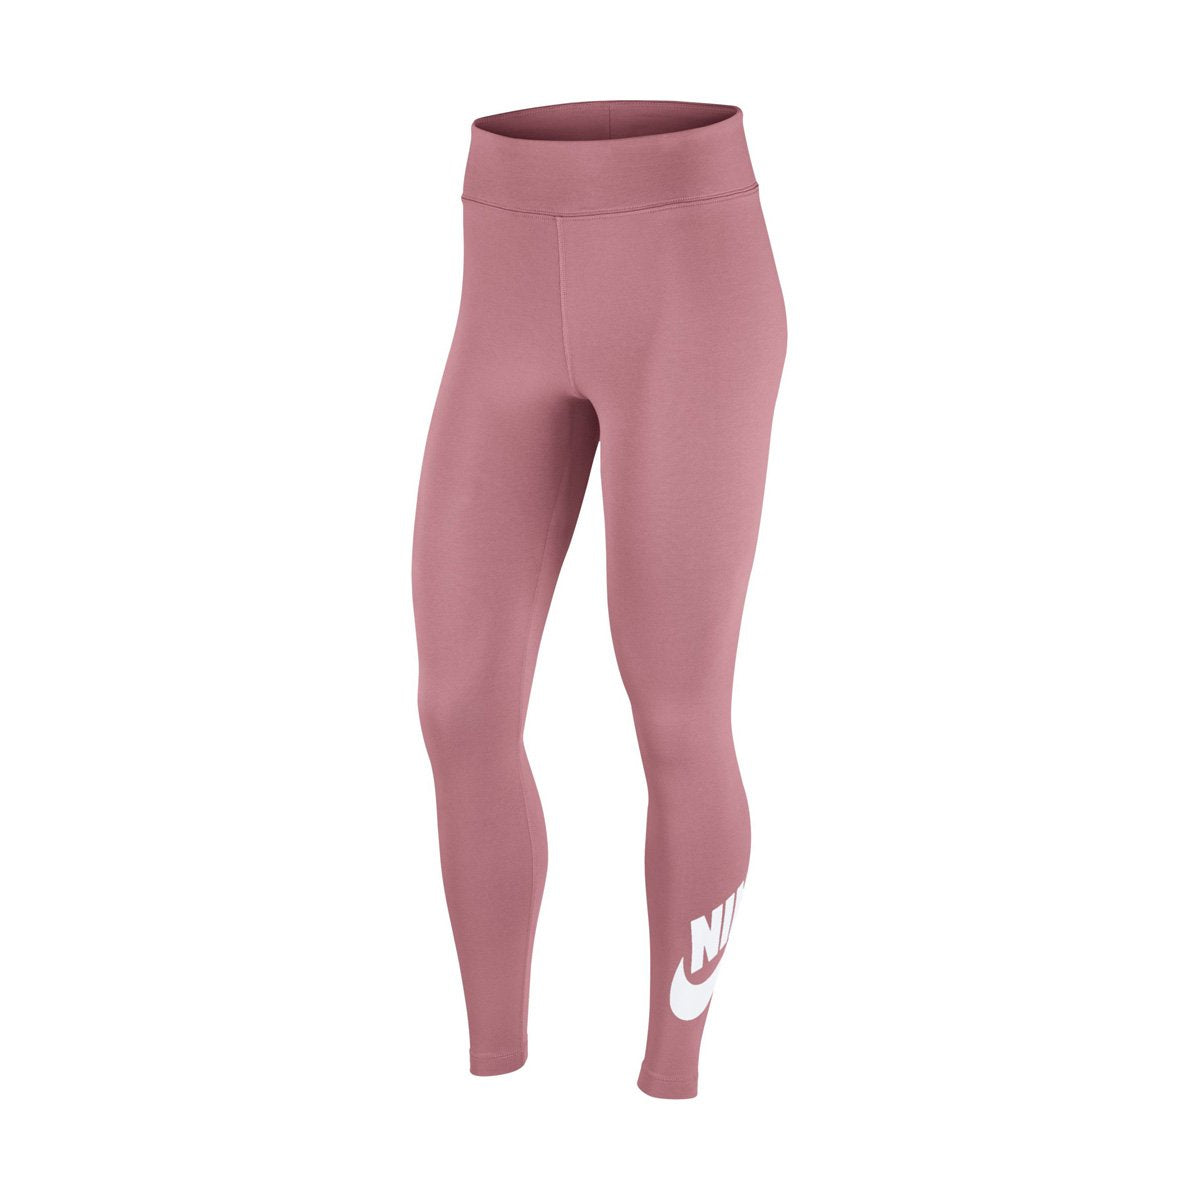 Nike Sportswear Women's High-Waisted Leggings